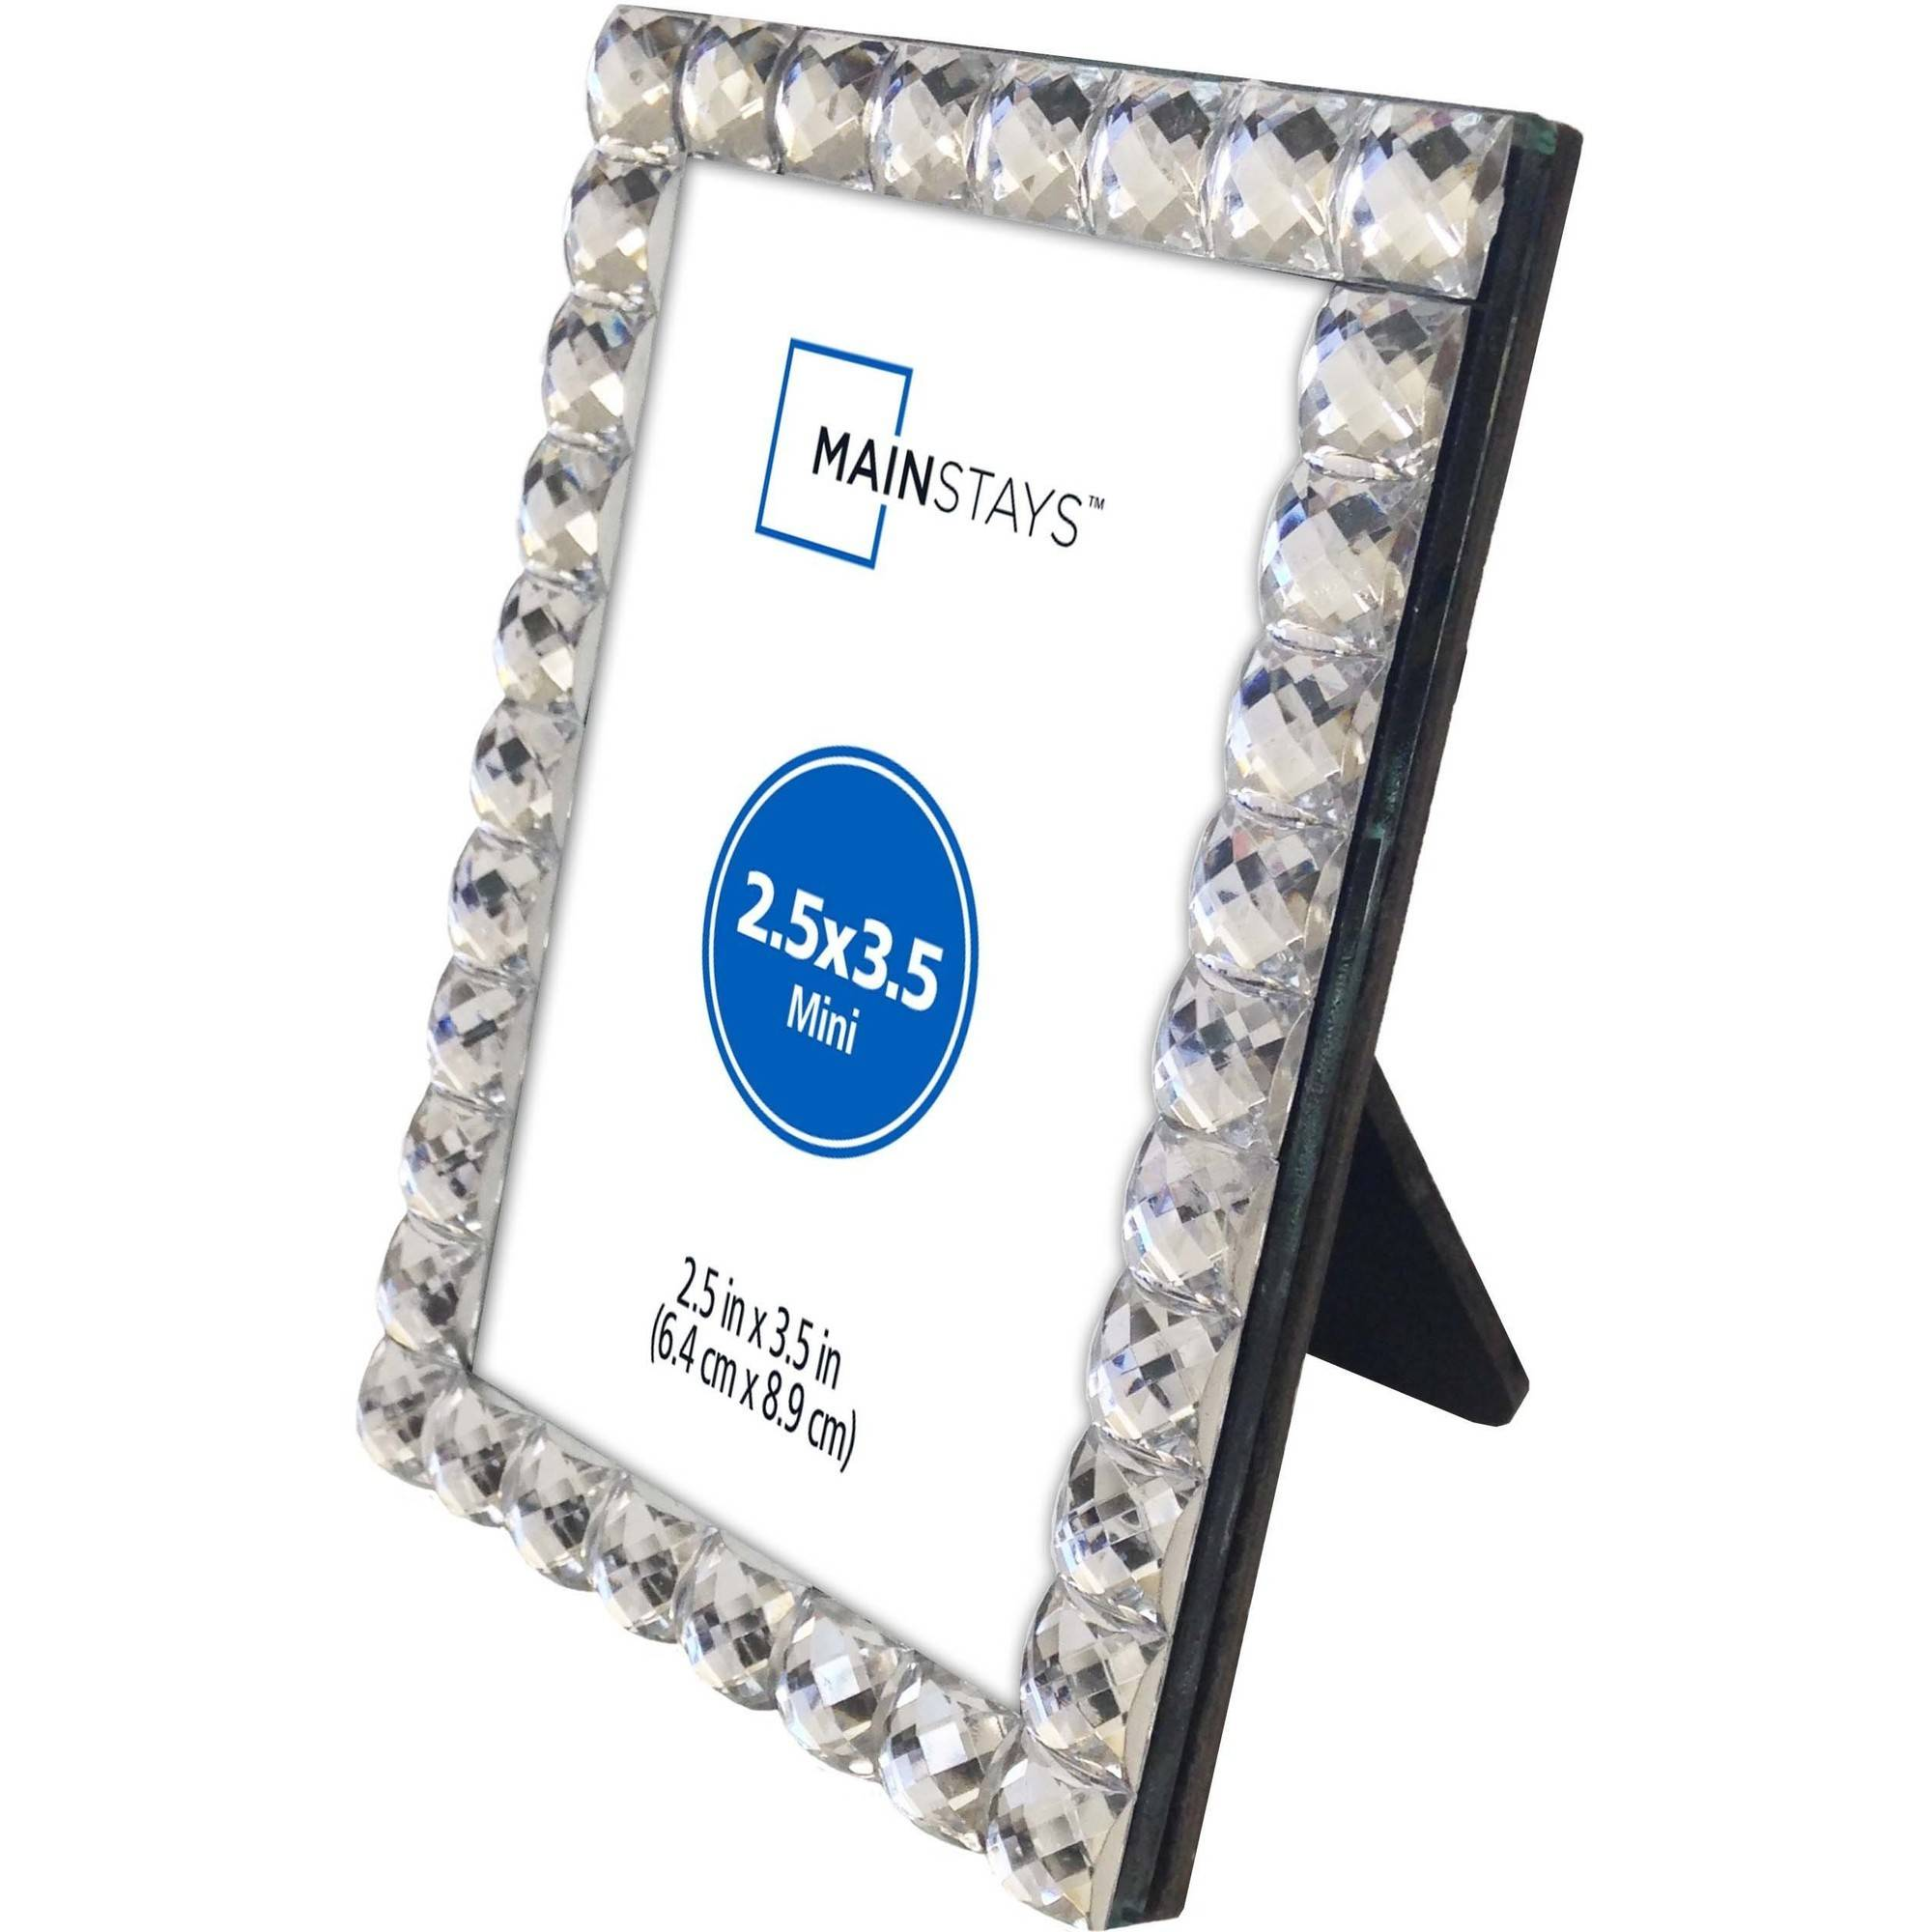 Mainstays Bling Mini Picture Frame, Silver - Walmart.com